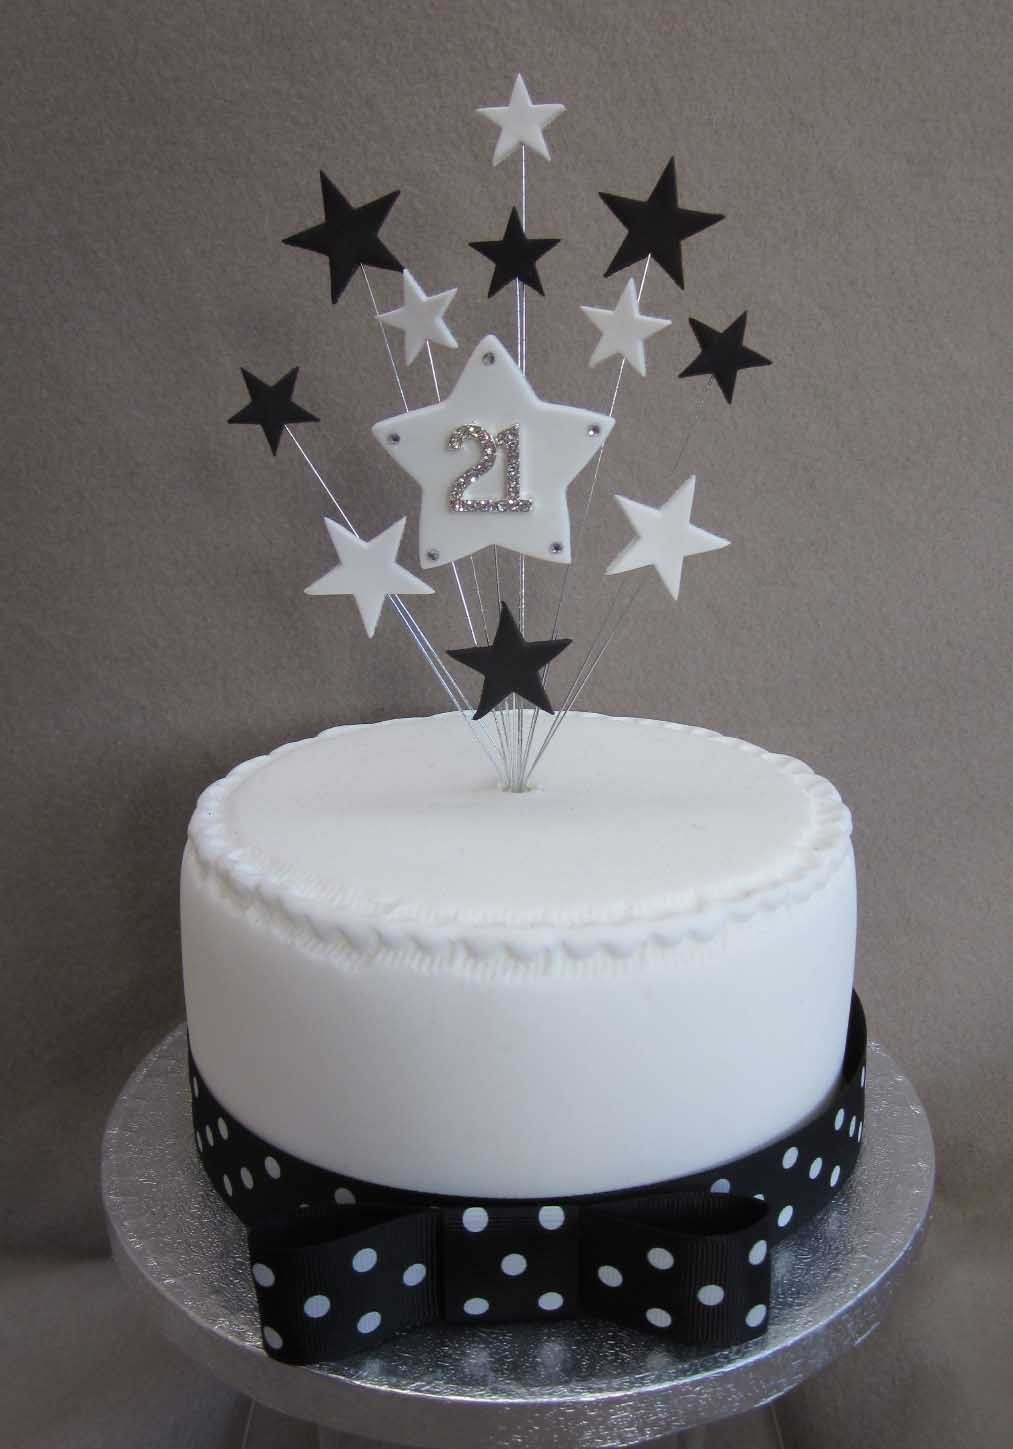 21st Birthday Cake Topper Black And White Stars Suitable For A Small Or Cupcake Amazoncouk Kitchen Home